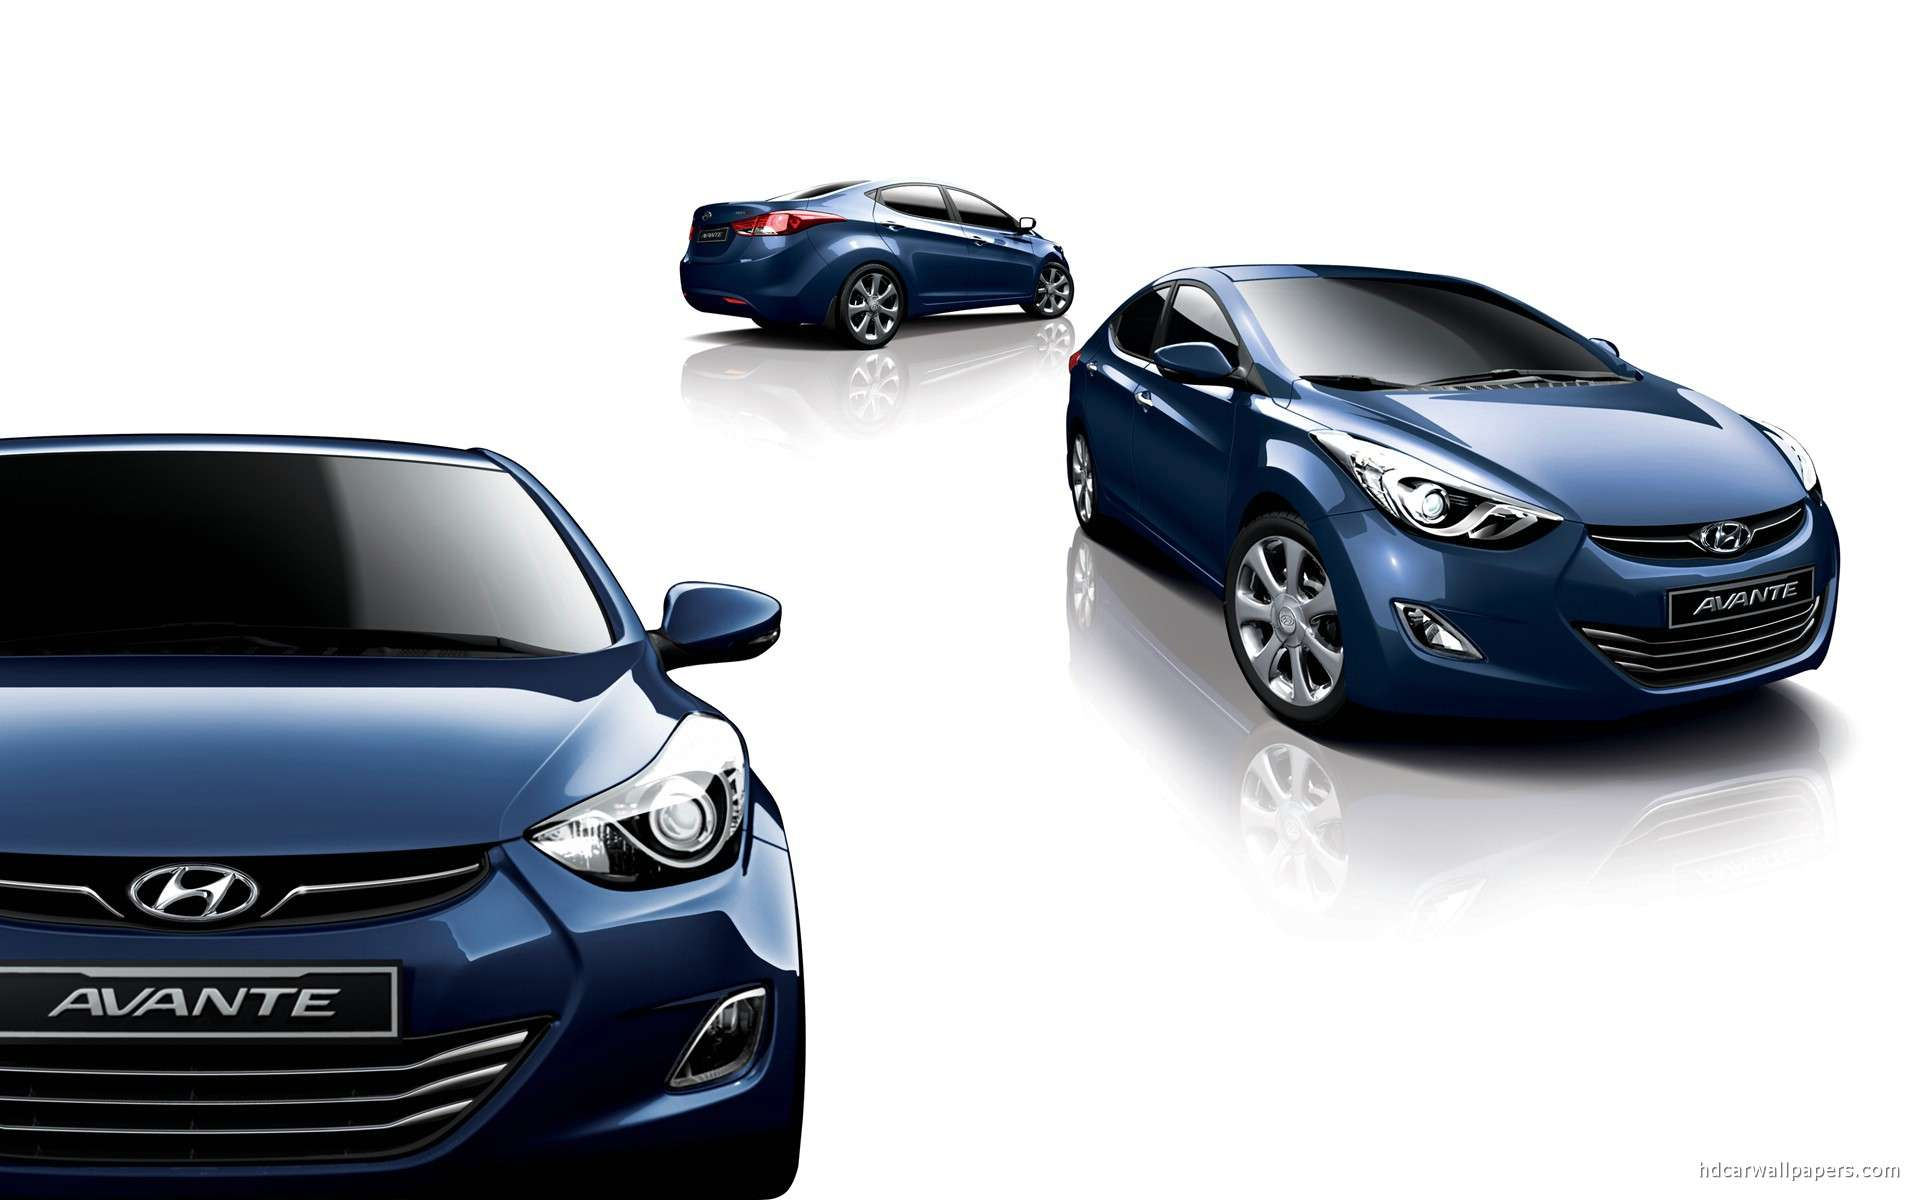 2011 Hyundai Avante Elantra Hd Wallpapers